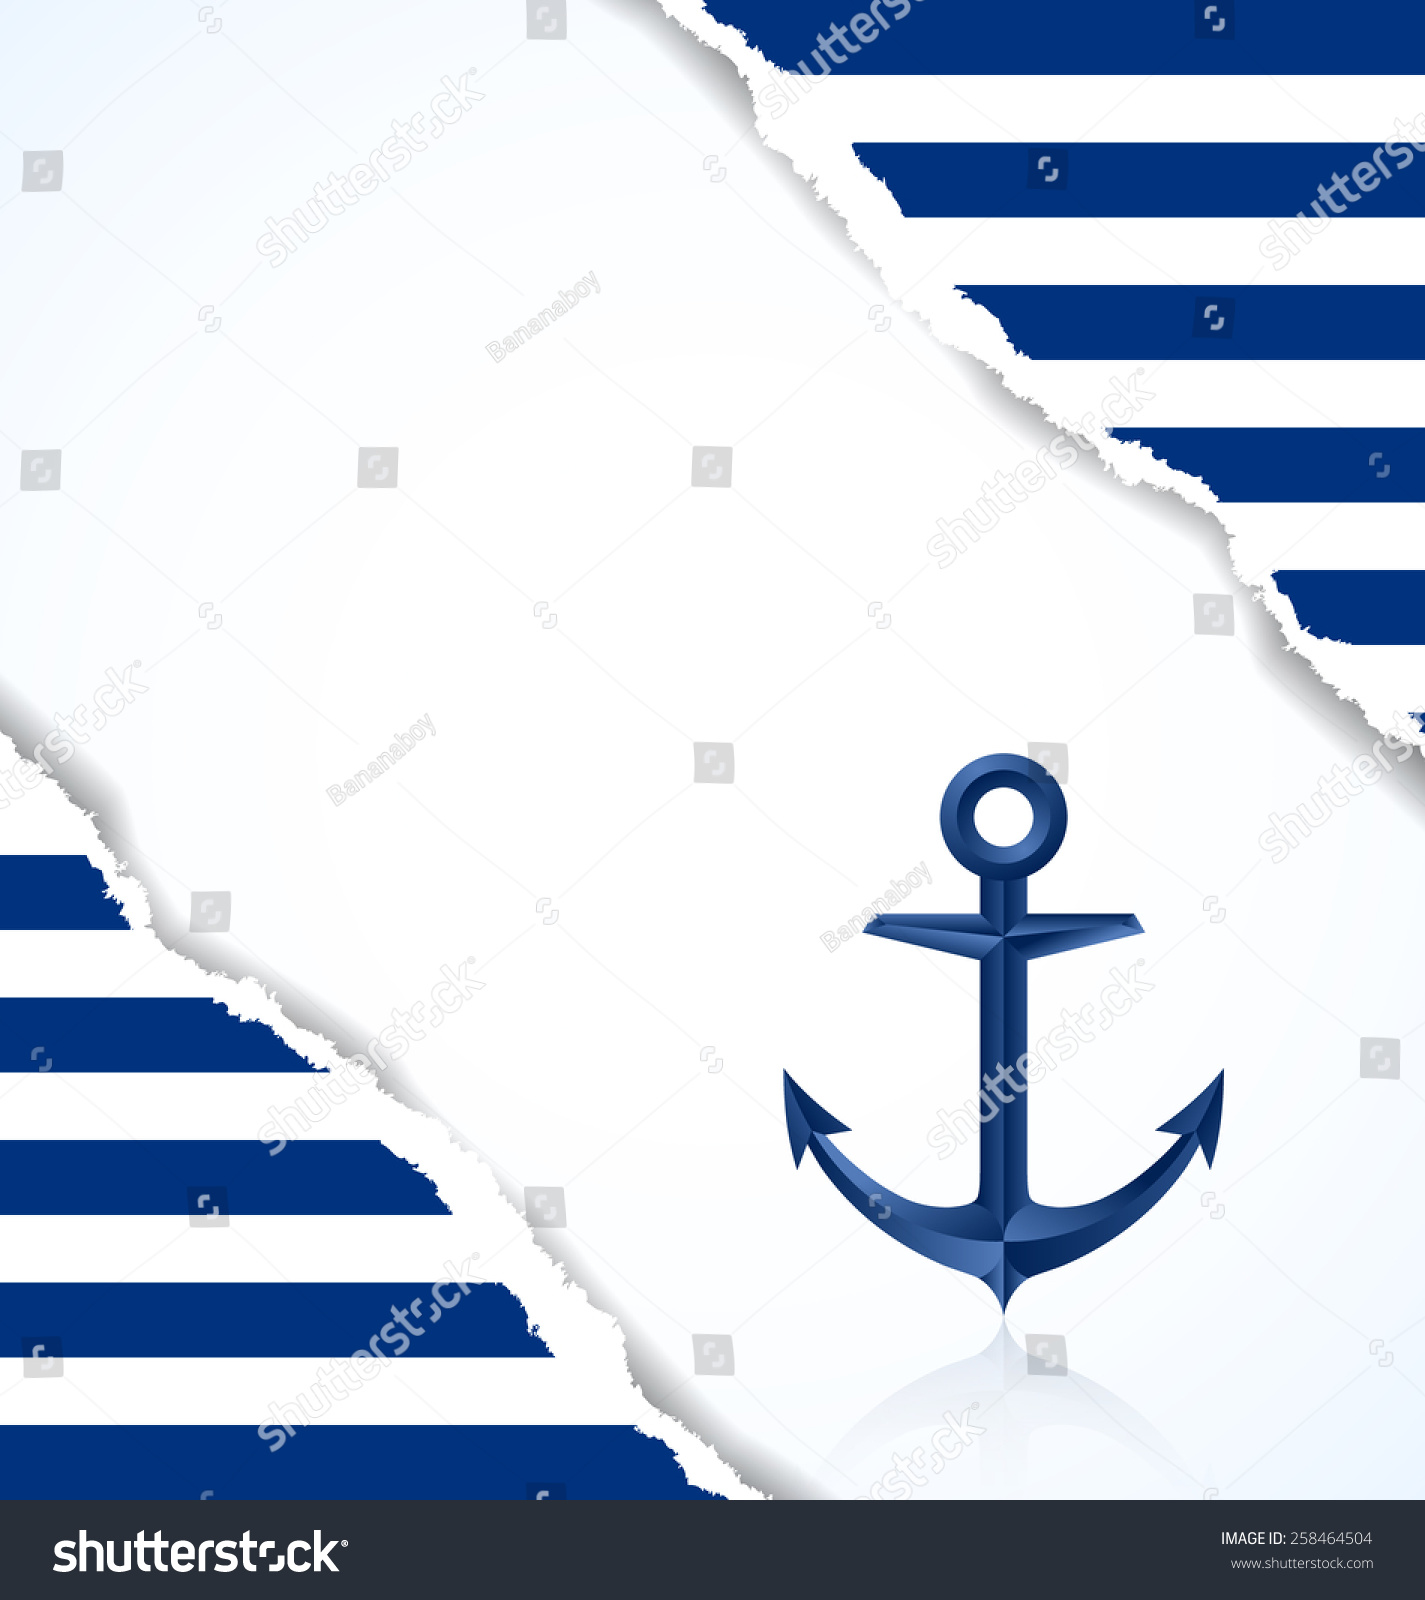 nautical background with anchor and blue and white stripes